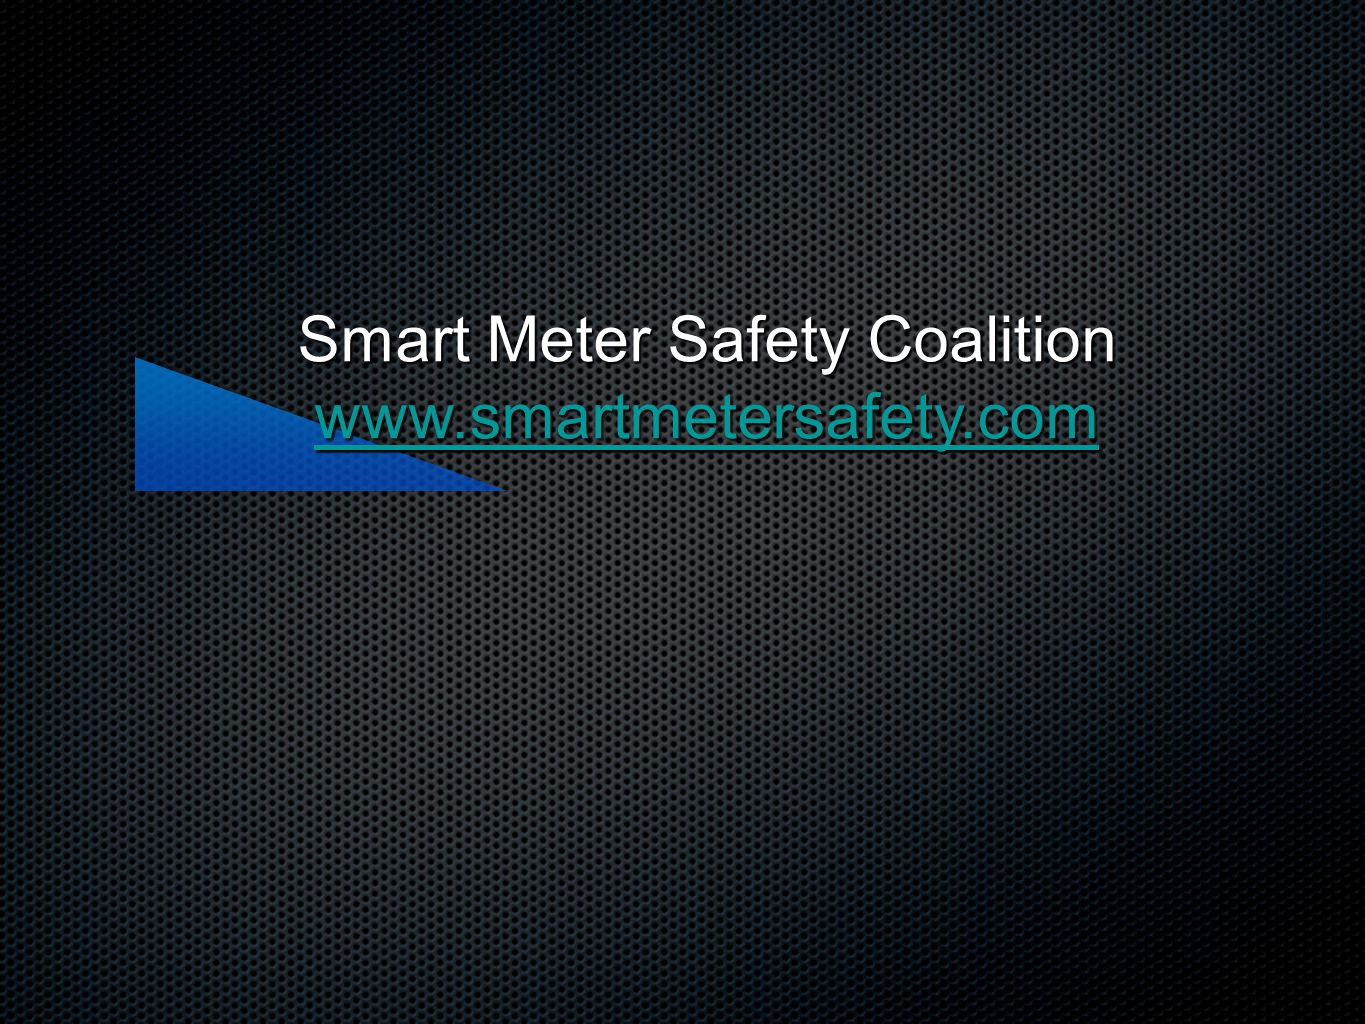 Smart Meter Safety Coalition www.smartmetersafety.com